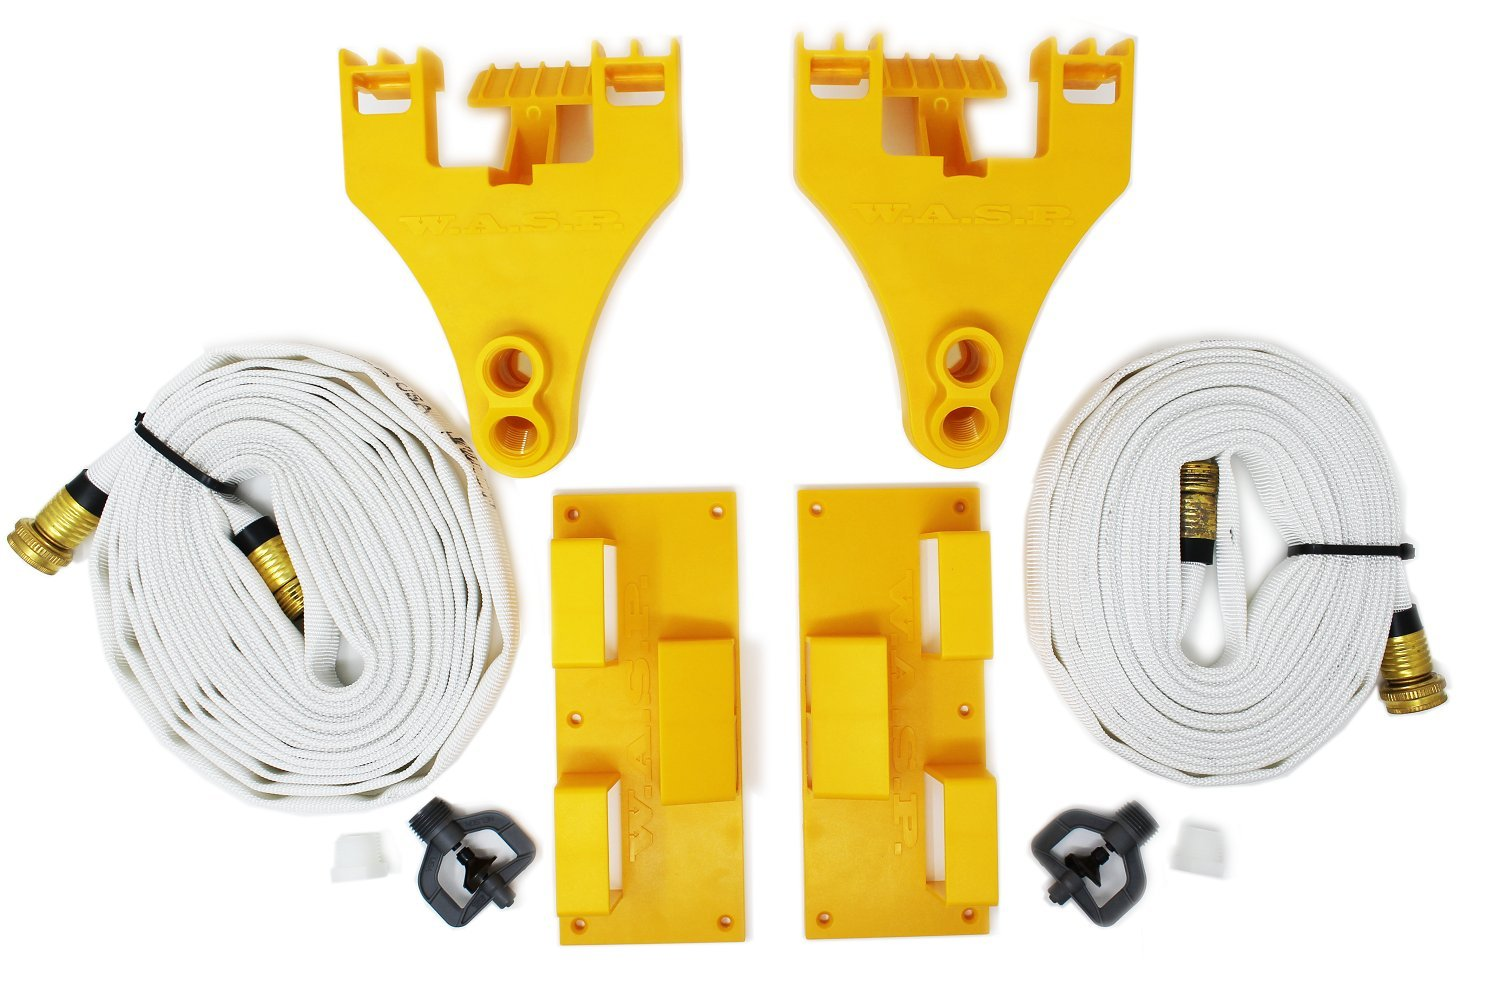 WASP Gutter Mount Sprinkler System Wildfire Protection Kit